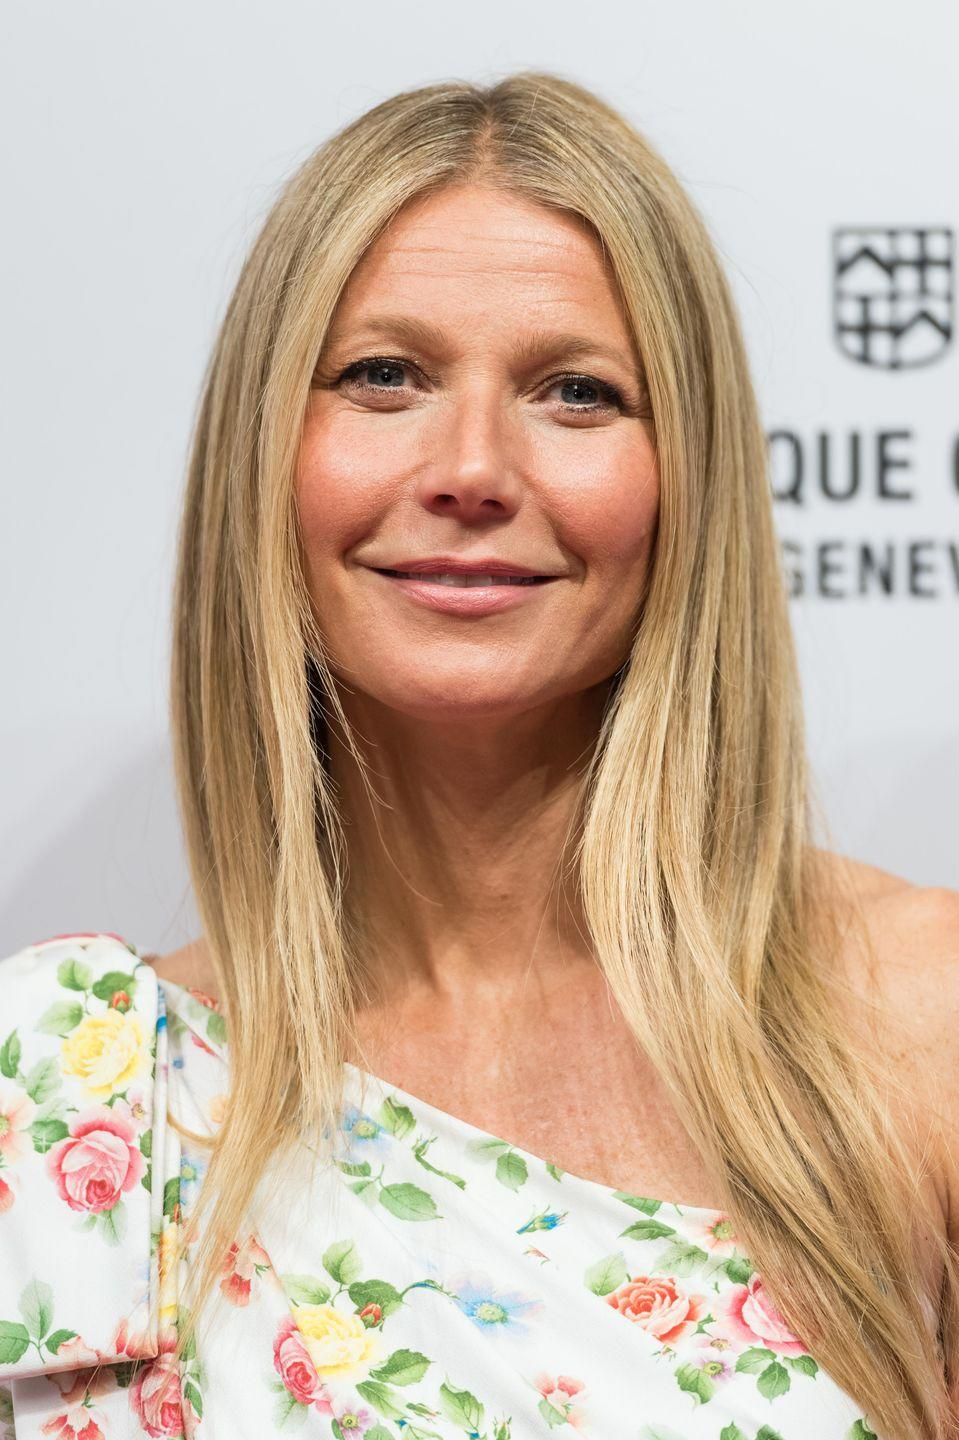 """<p>Health guru Gwyneth Paltrow told Harper's Bazaar that she's tried everything when it comes to skincare, including Botox. 'I'll try anything. Except I won't do Botox again, because I looked crazy. I looked like Joan Rivers!' Gwyneth <a href=""""https://www.huffpost.com/entry/gwyneth-paltrow-botox-crazy_n_3061576"""" data-ylk=""""slk:said in 2013"""" class=""""link rapid-noclick-resp"""">said in 2013</a>.</p>"""